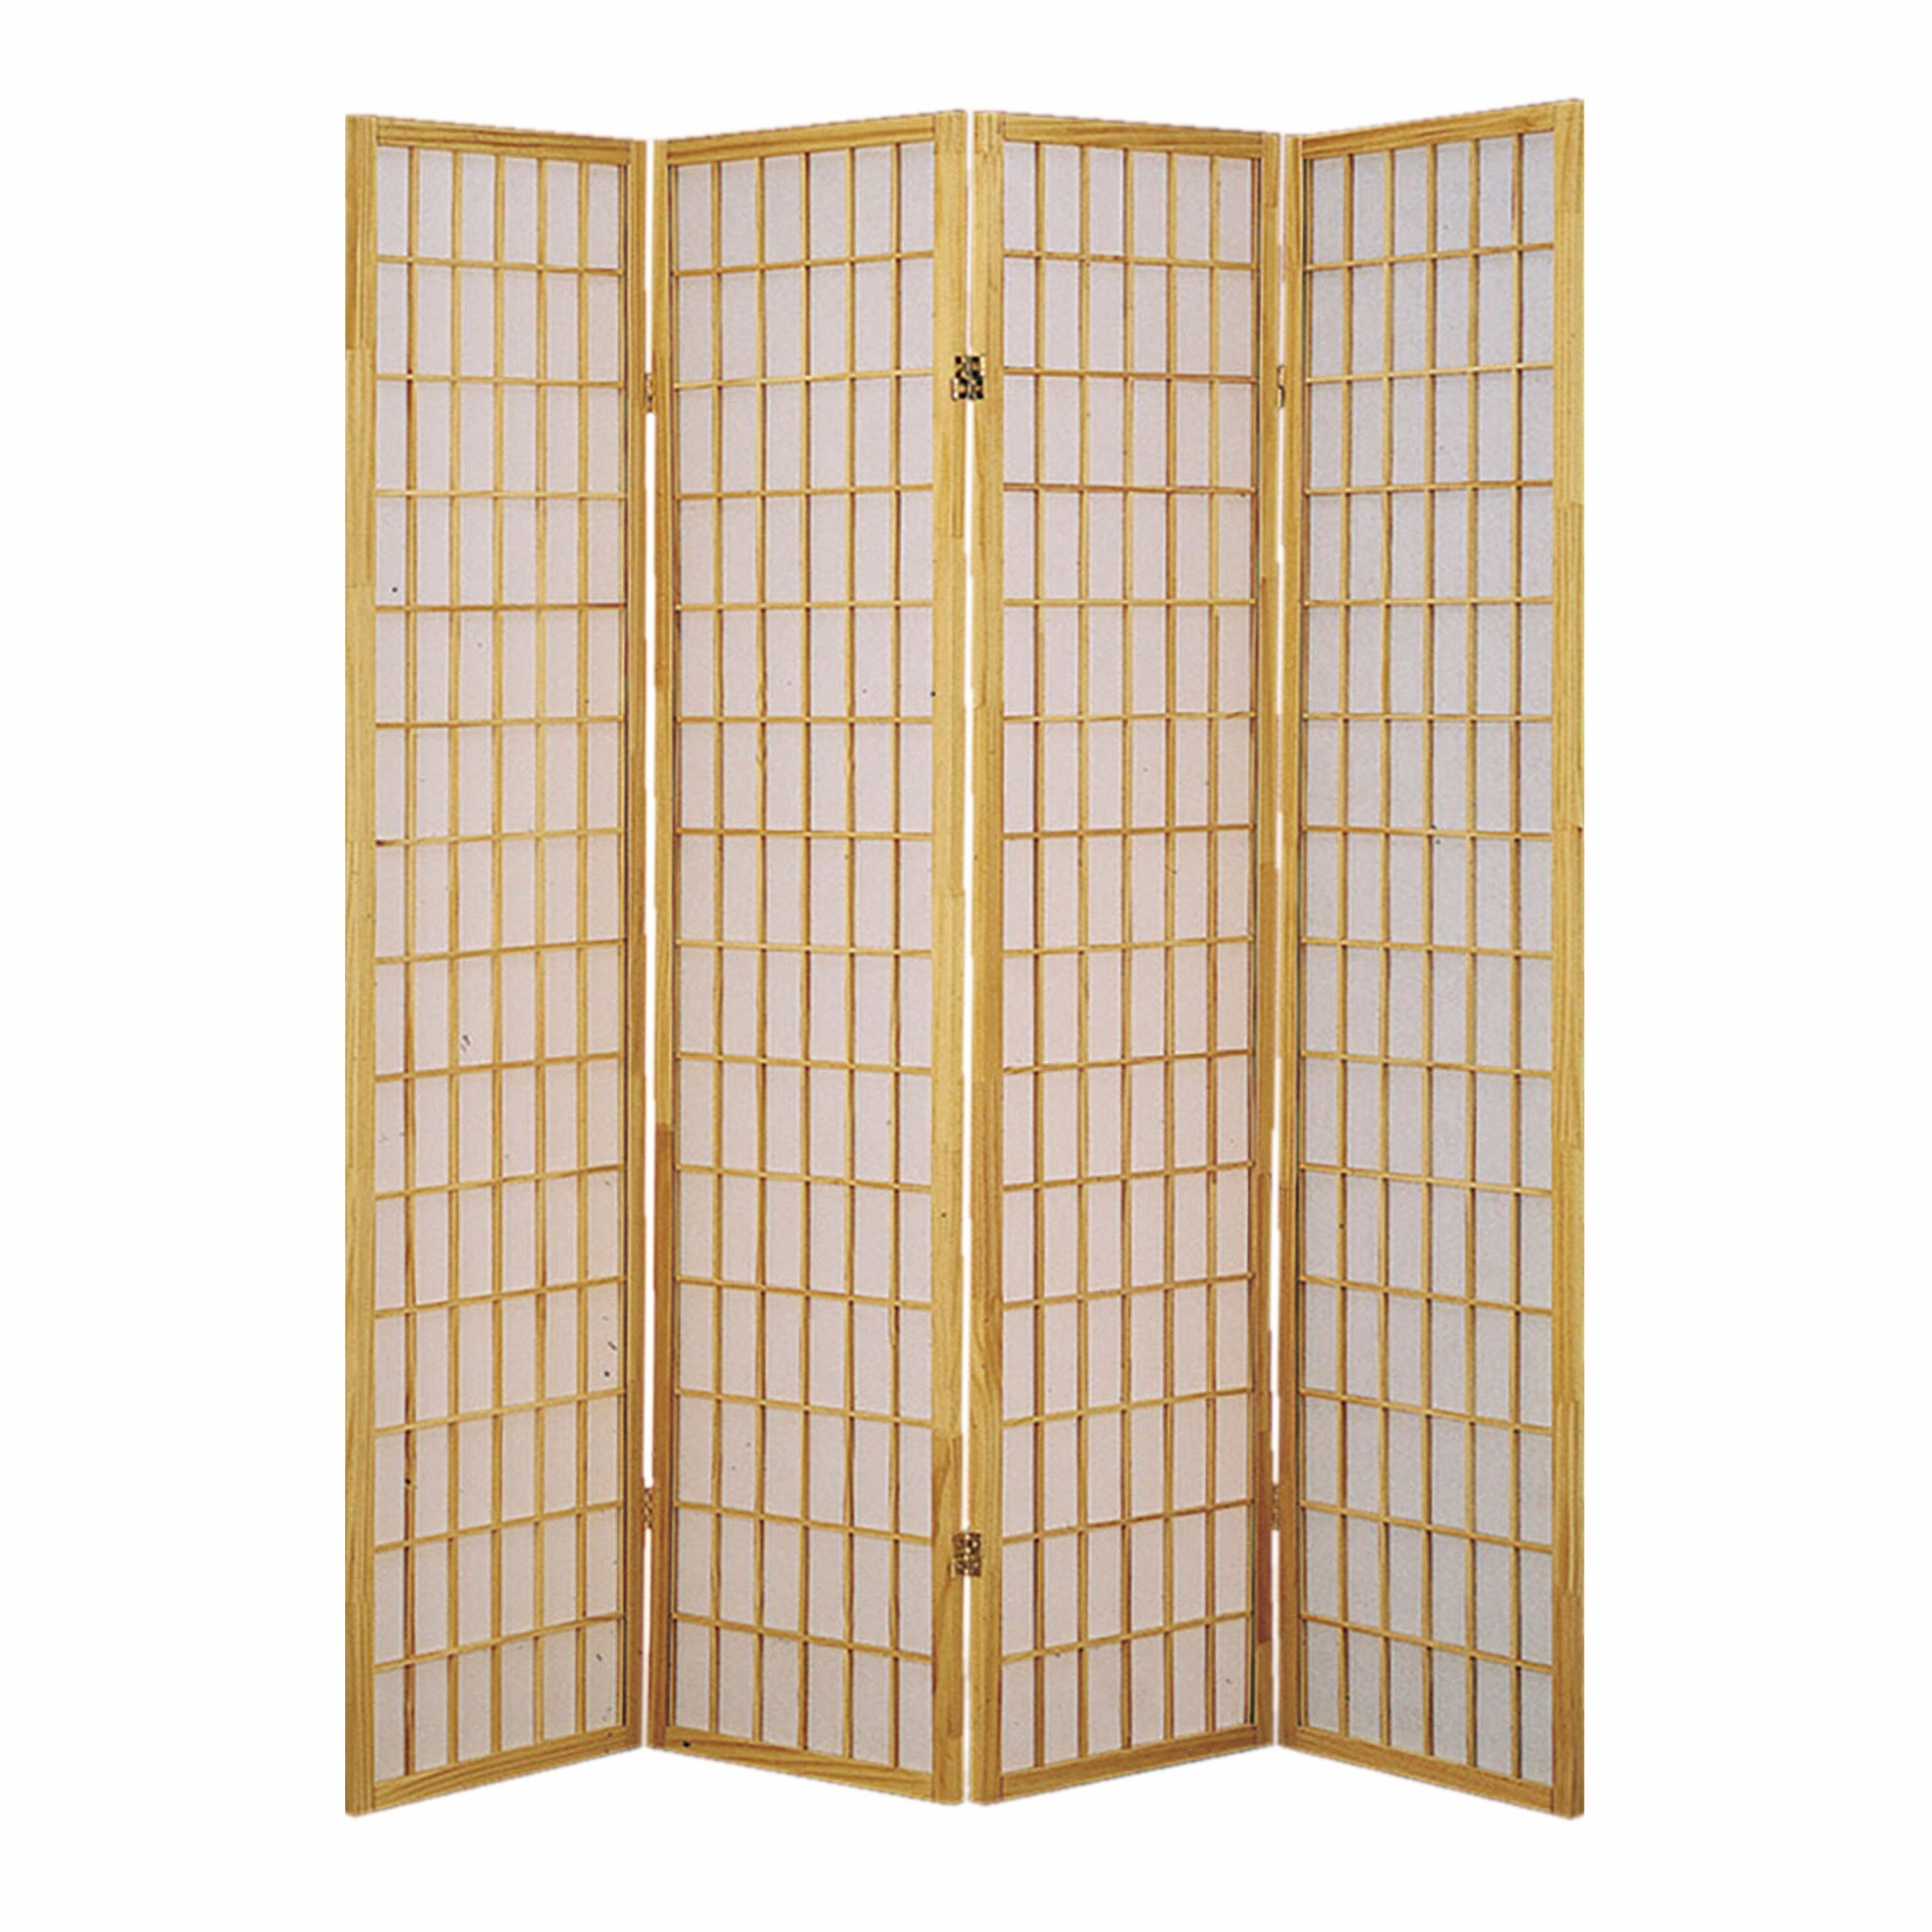 "68"" x 1"" x 70"" Natural And Brown, Shoji And Wood - 4 Panel Screen"